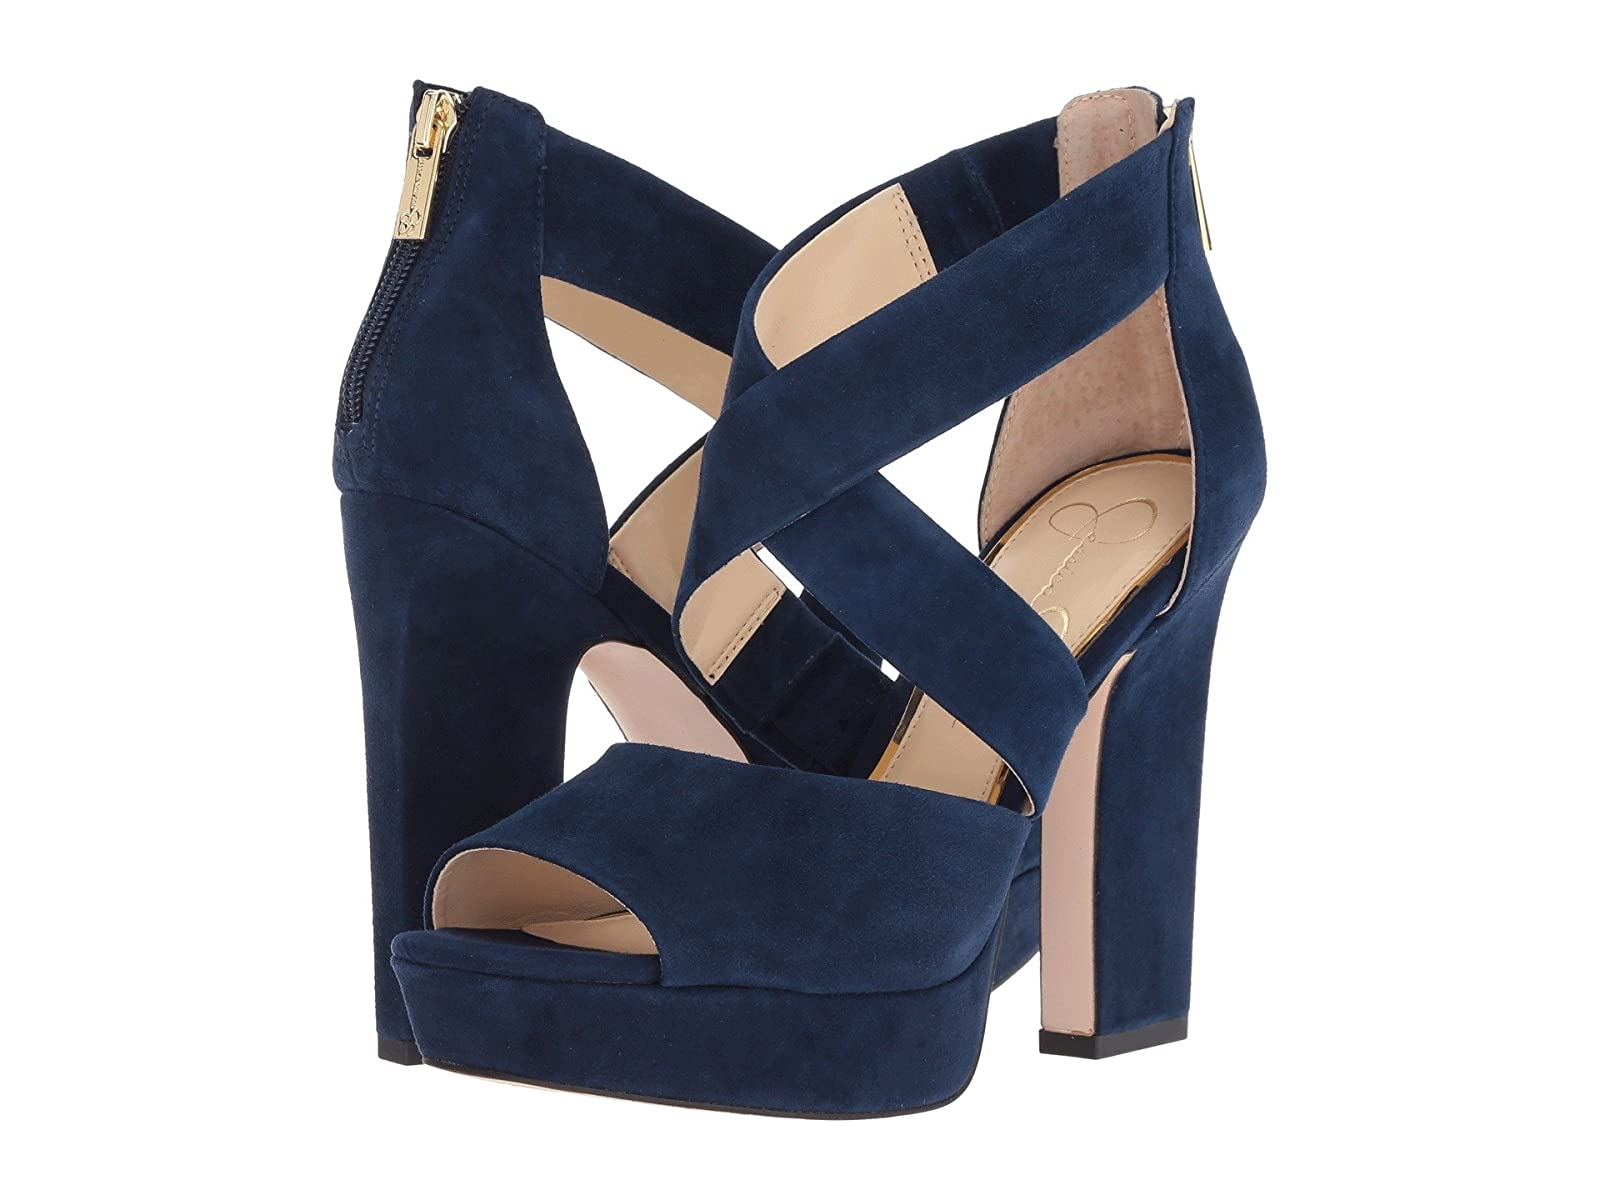 Jessica Simpson TehyaAtmospheric grades have affordable shoes